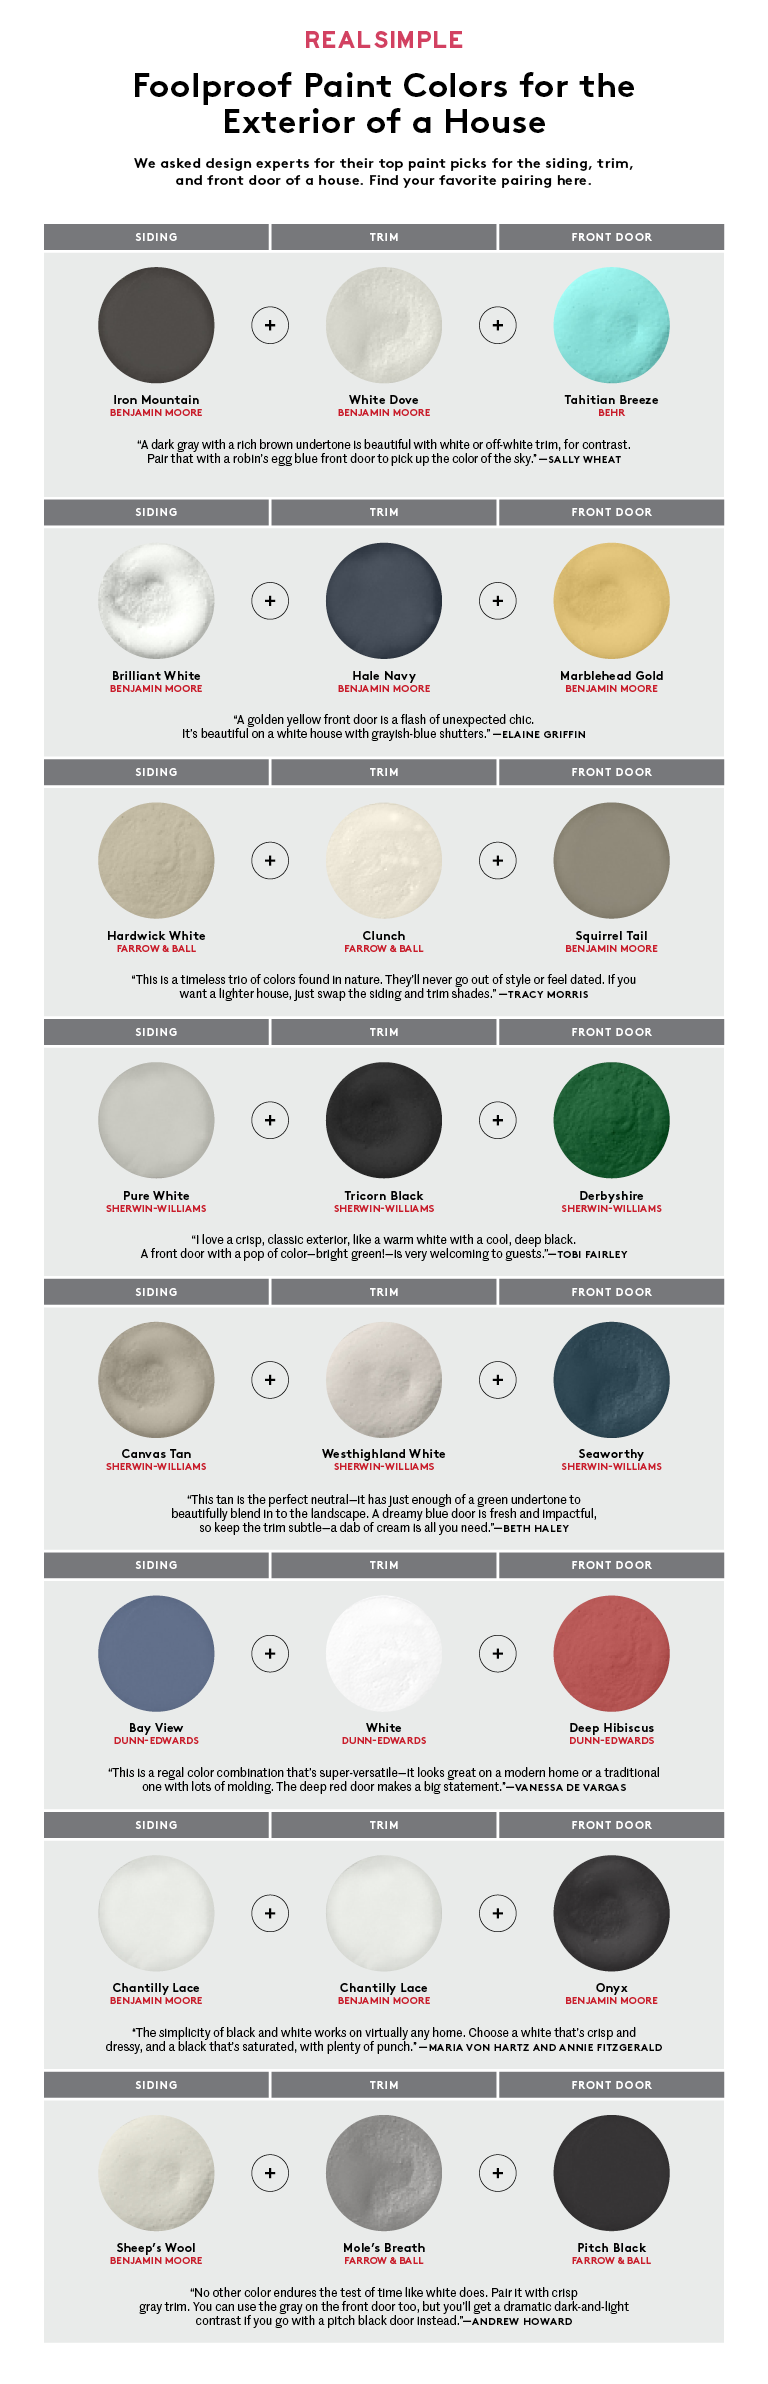 Exterior house colors chart real simple for How to pick paint colors